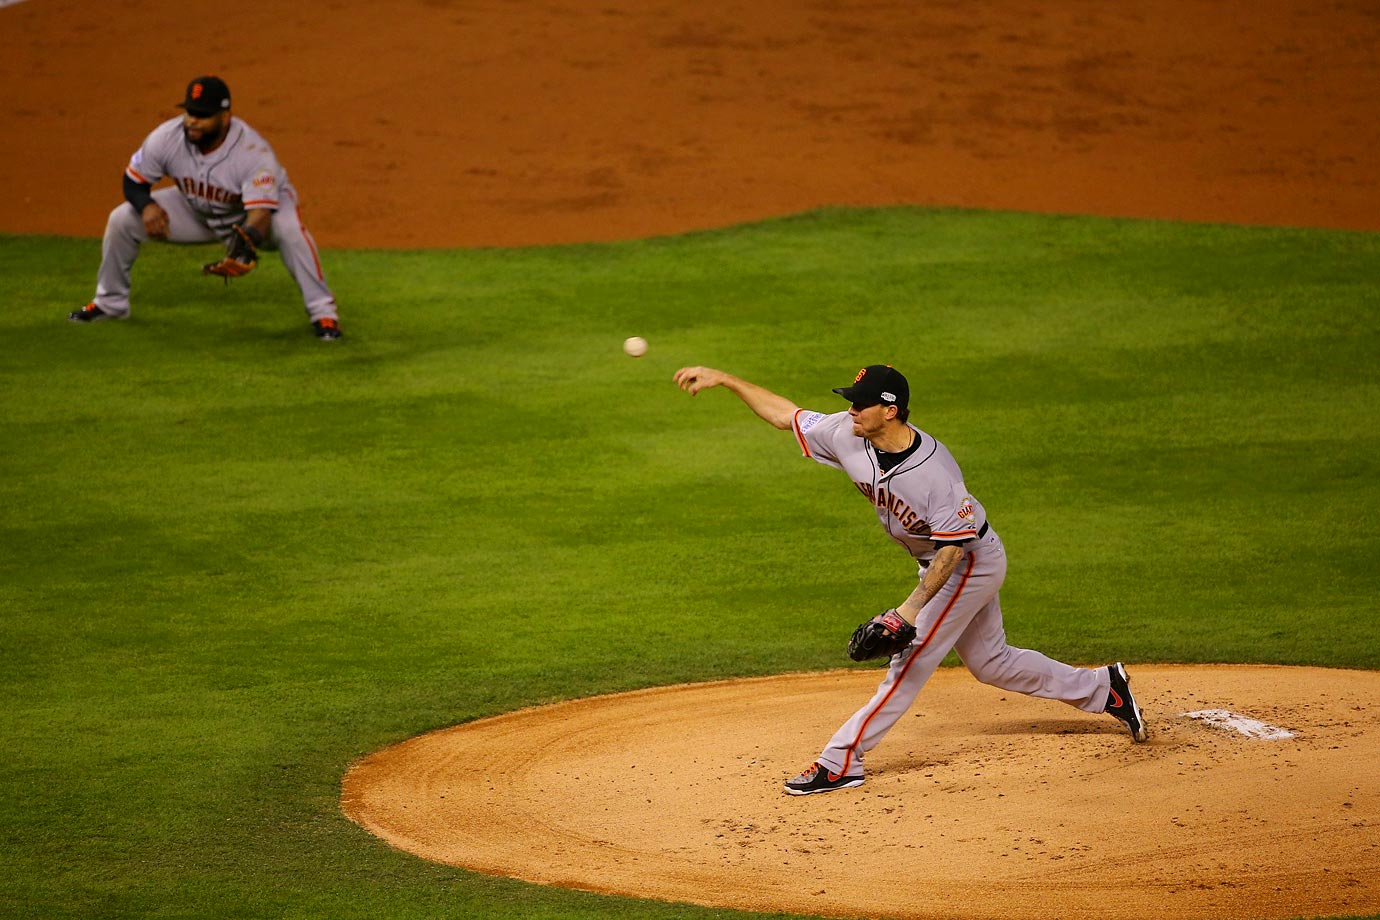 San Francisco Giants starting pitcher Jake Peavy in the first.